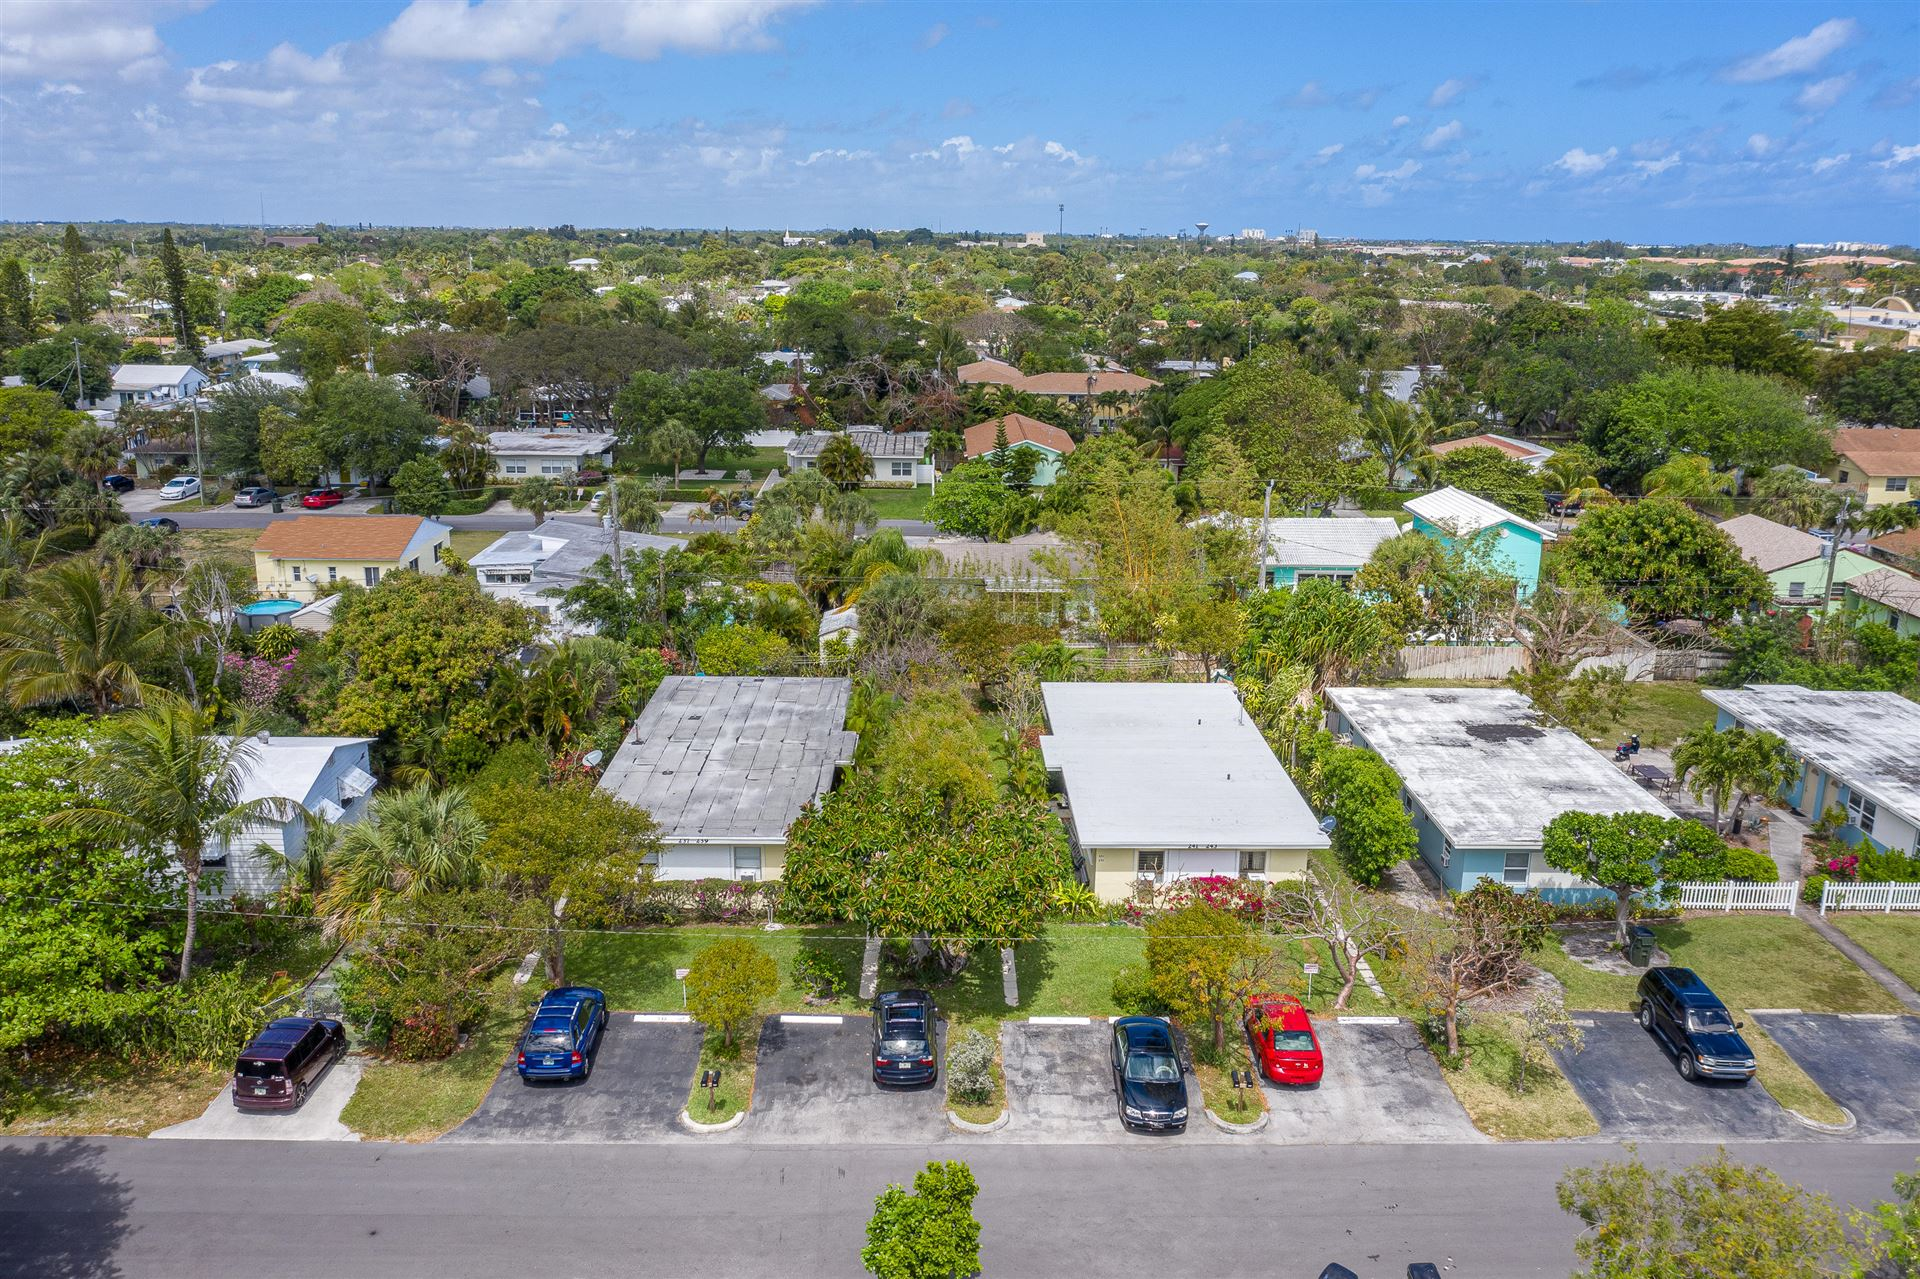 237 NE 10th Street, Delray Beach, FL 33444 - #: RX-10645598